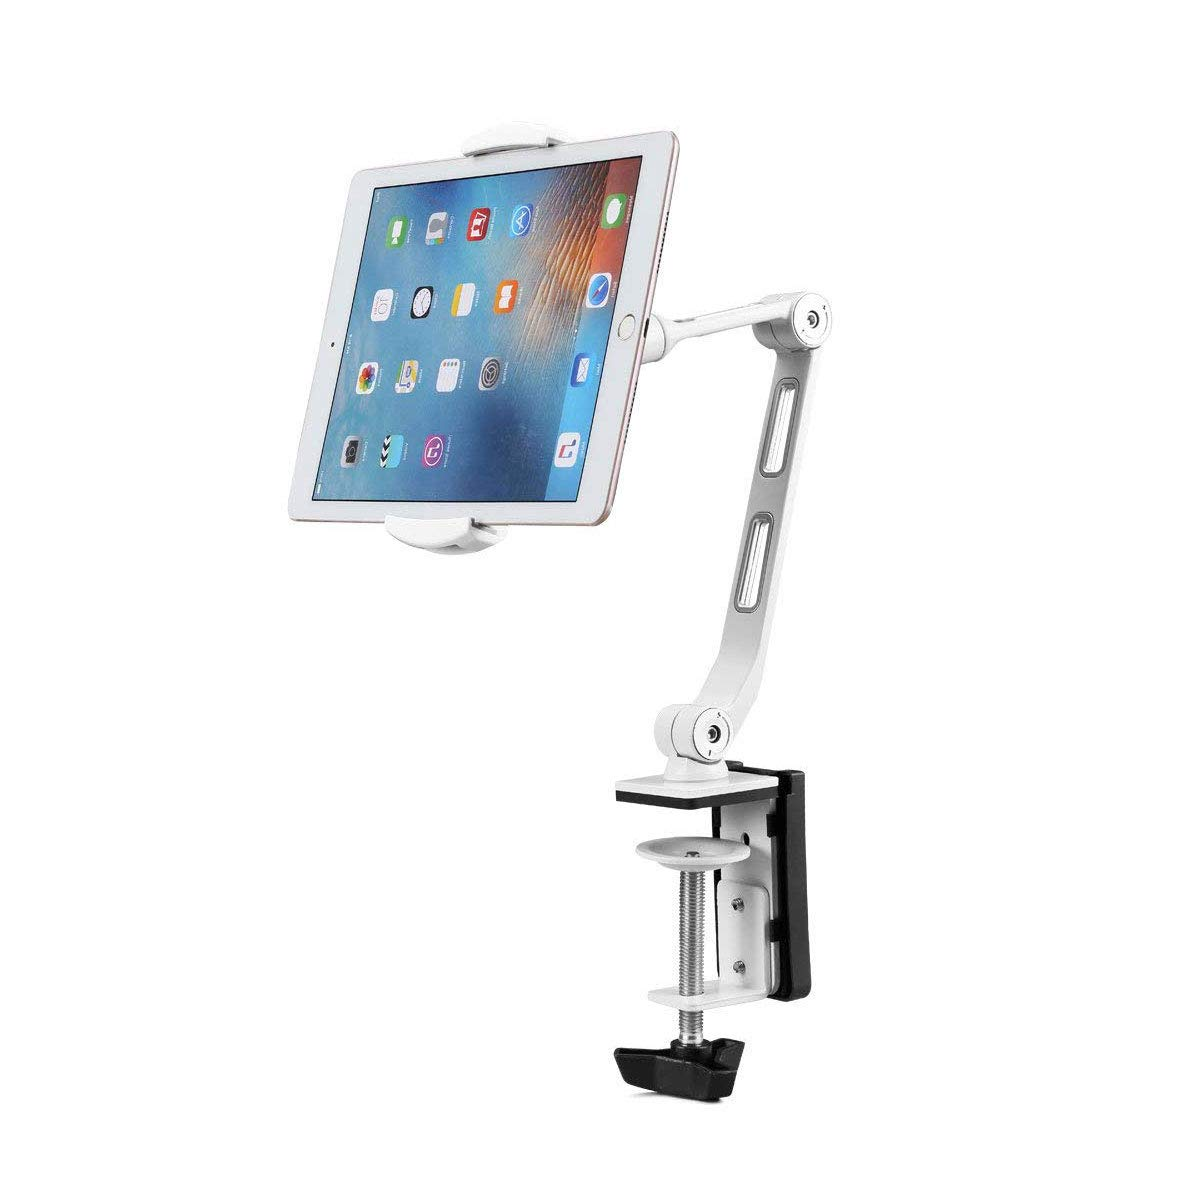 suptek 360 Degree Adjustable Stand/Holder with Clamp for Tablets & iPad iPhone Samsung Asus Tablet Smartphone and More up to 13 inches White YF208BW